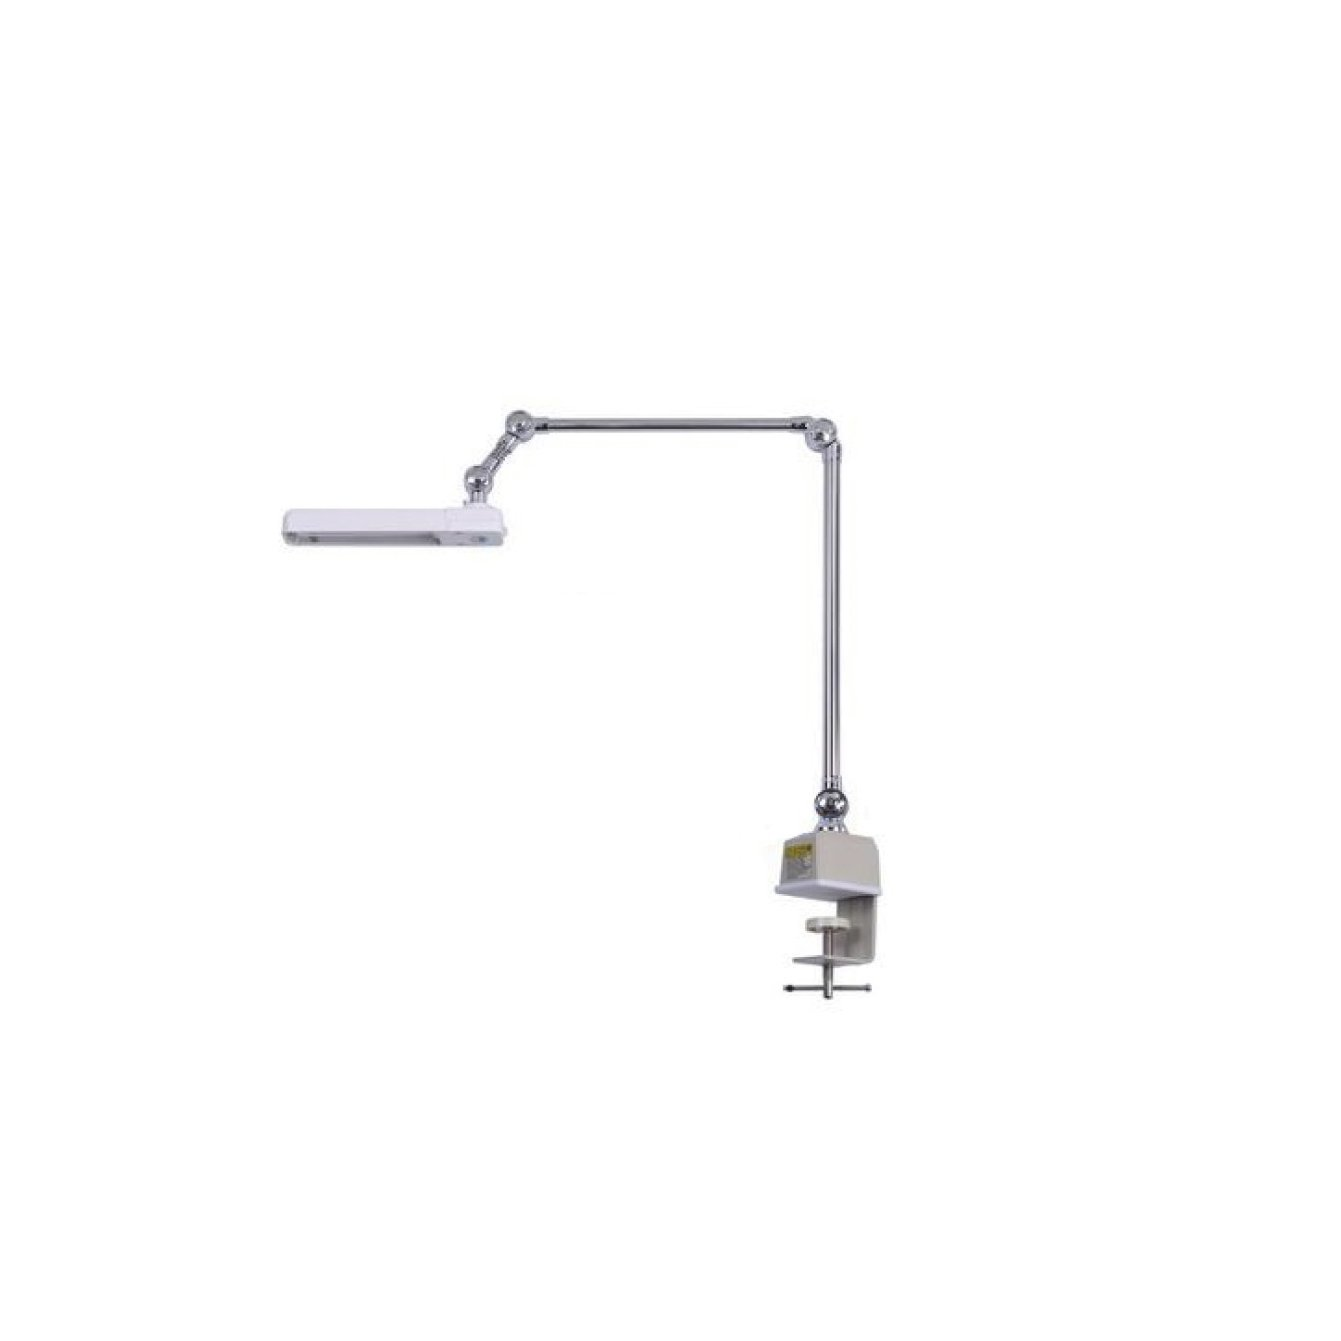 Haimi HM-99T Industrial LED Adjustable Lamp